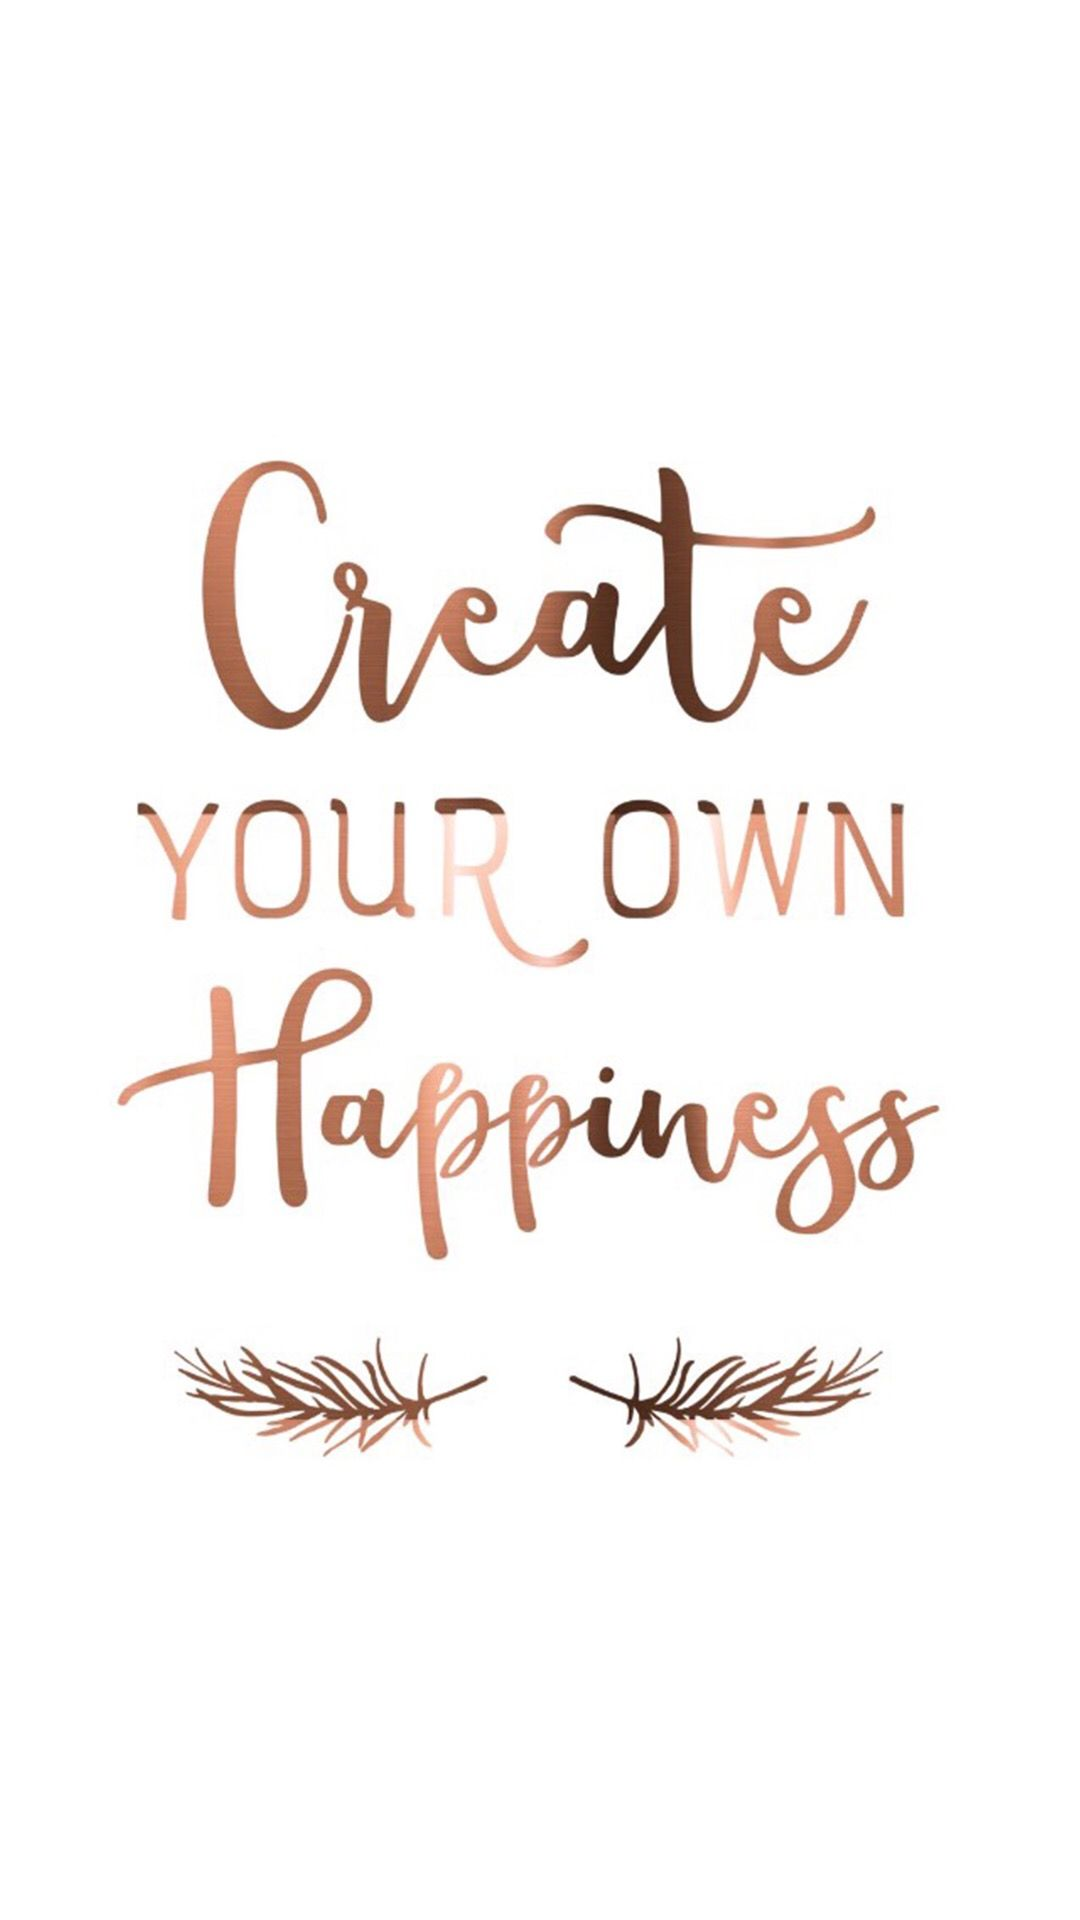 Image of: Motivational Quotes Its The Truth We Need To Create Our Own Happiness No Ones Going To Give It To Us Pinterest Its The Truth We Need To Create Our Own Happiness No Ones Going